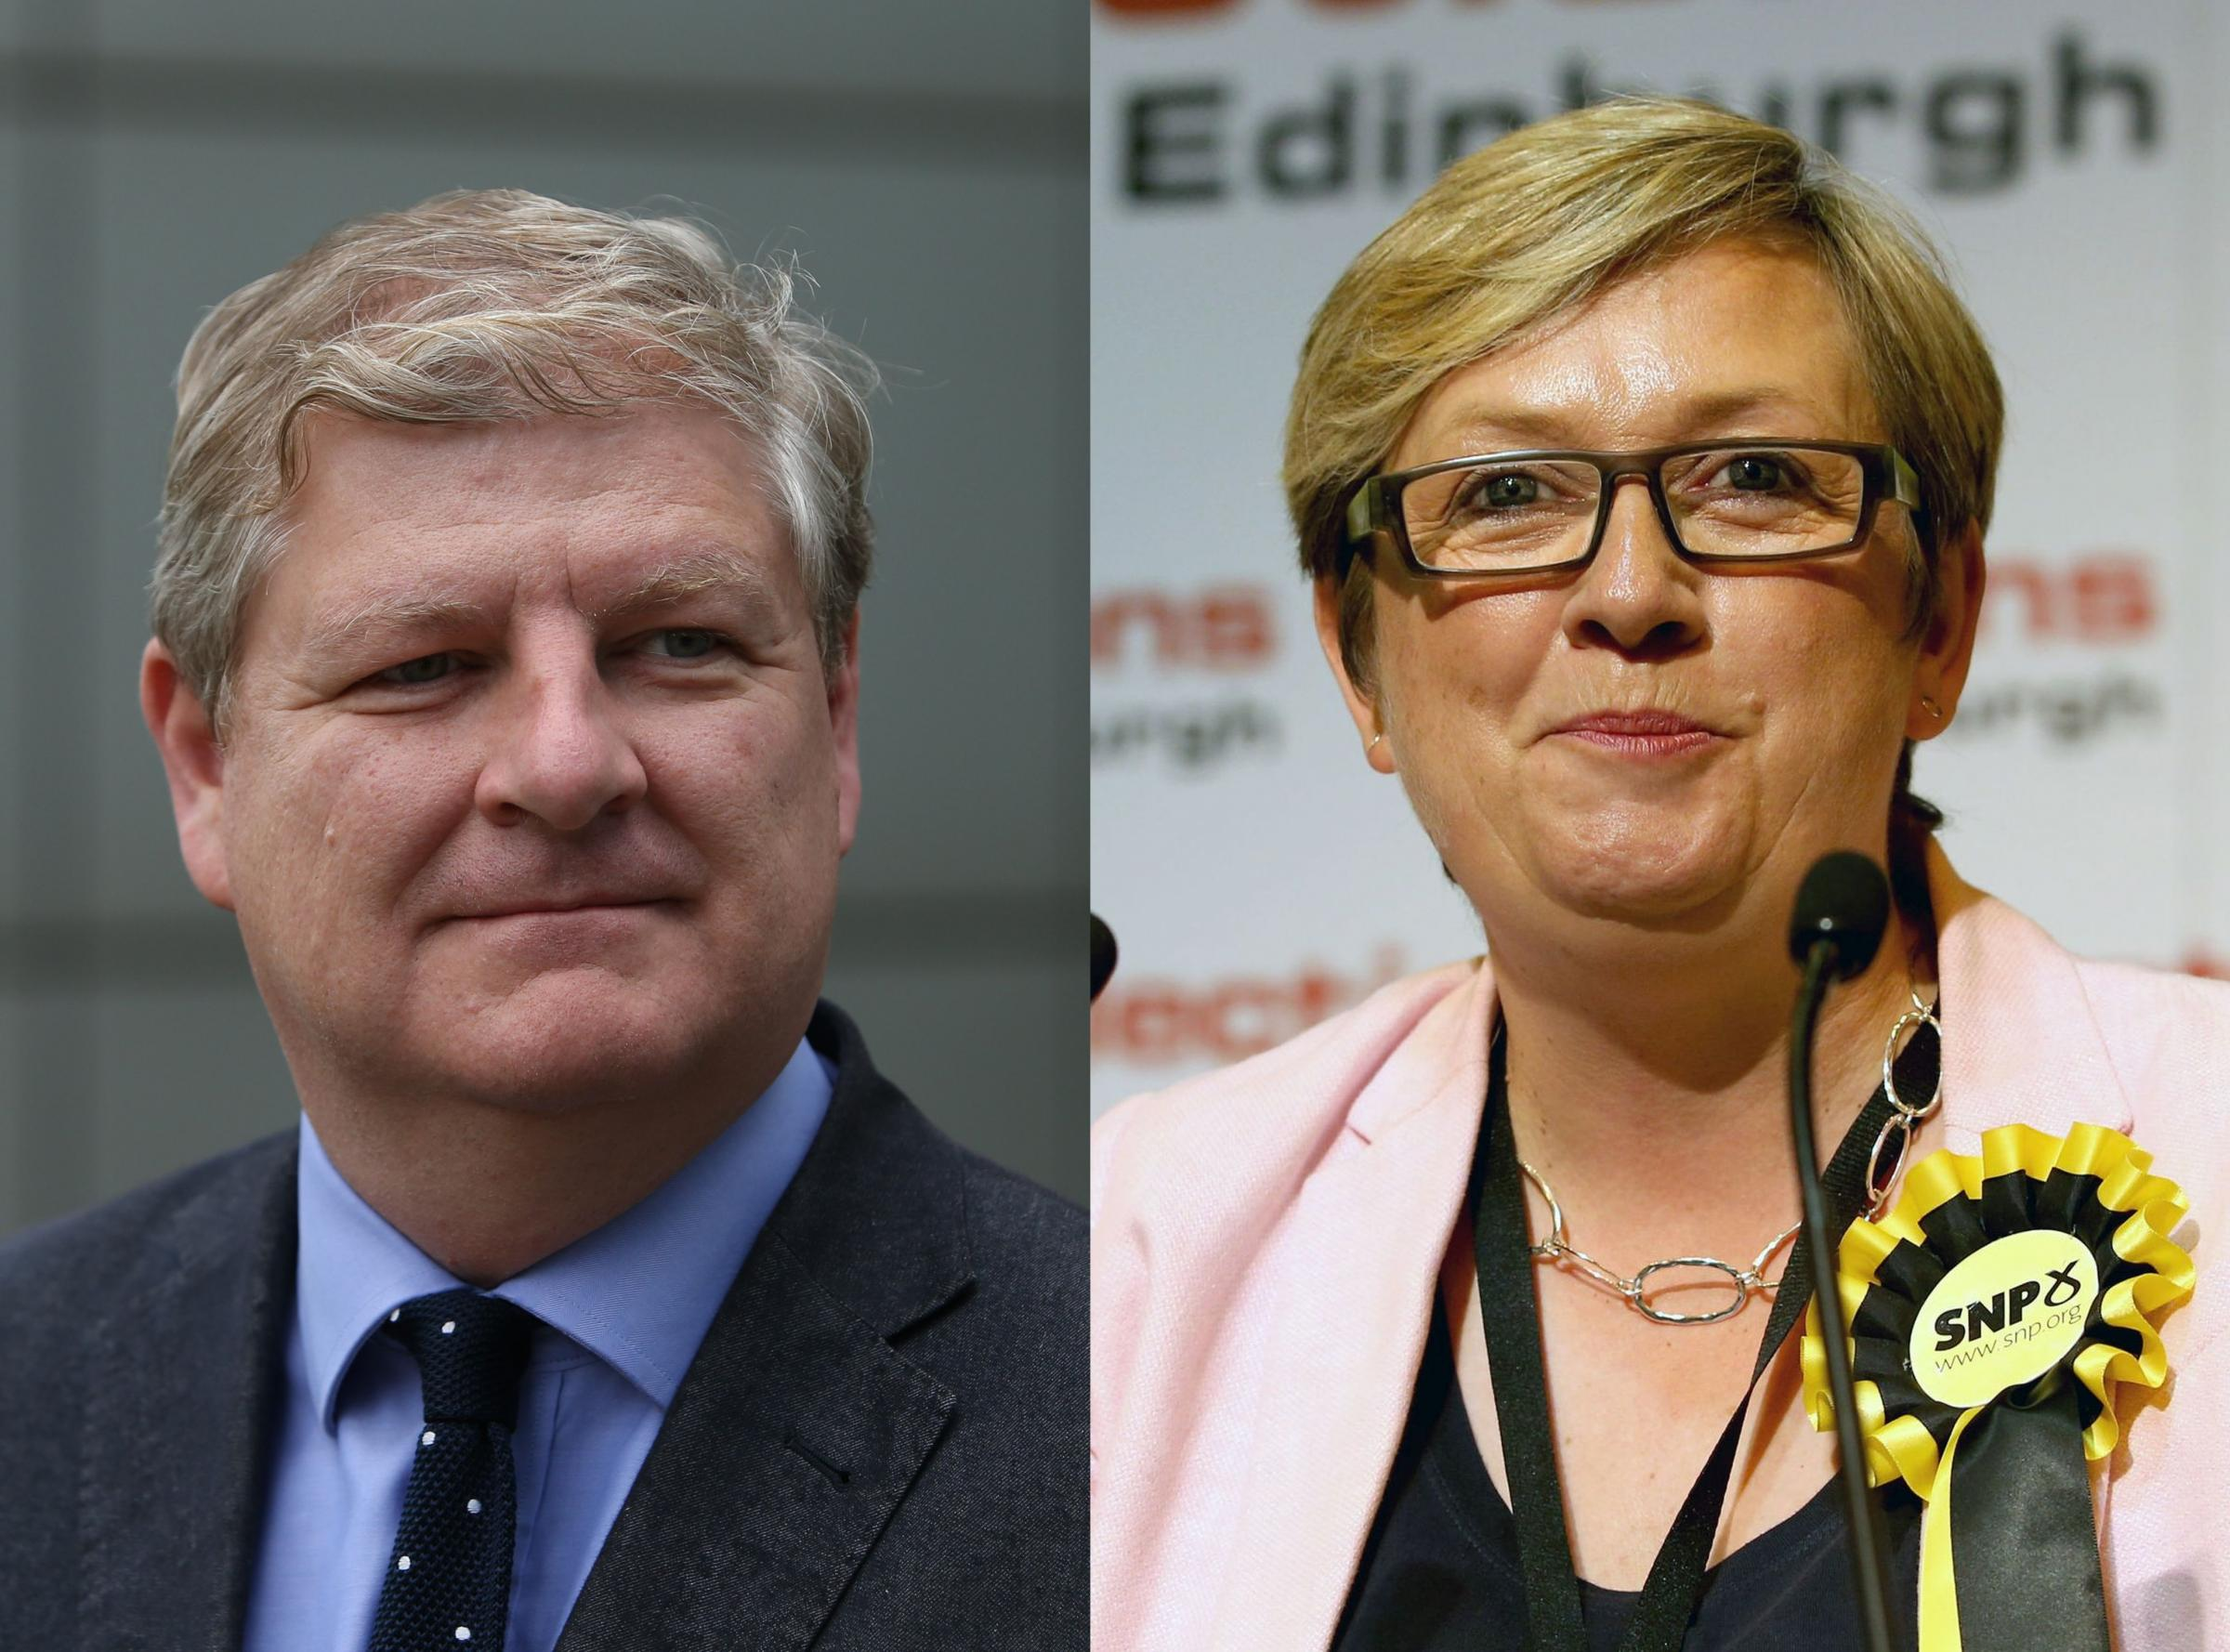 SNP battle looms over Holyrood candidacy